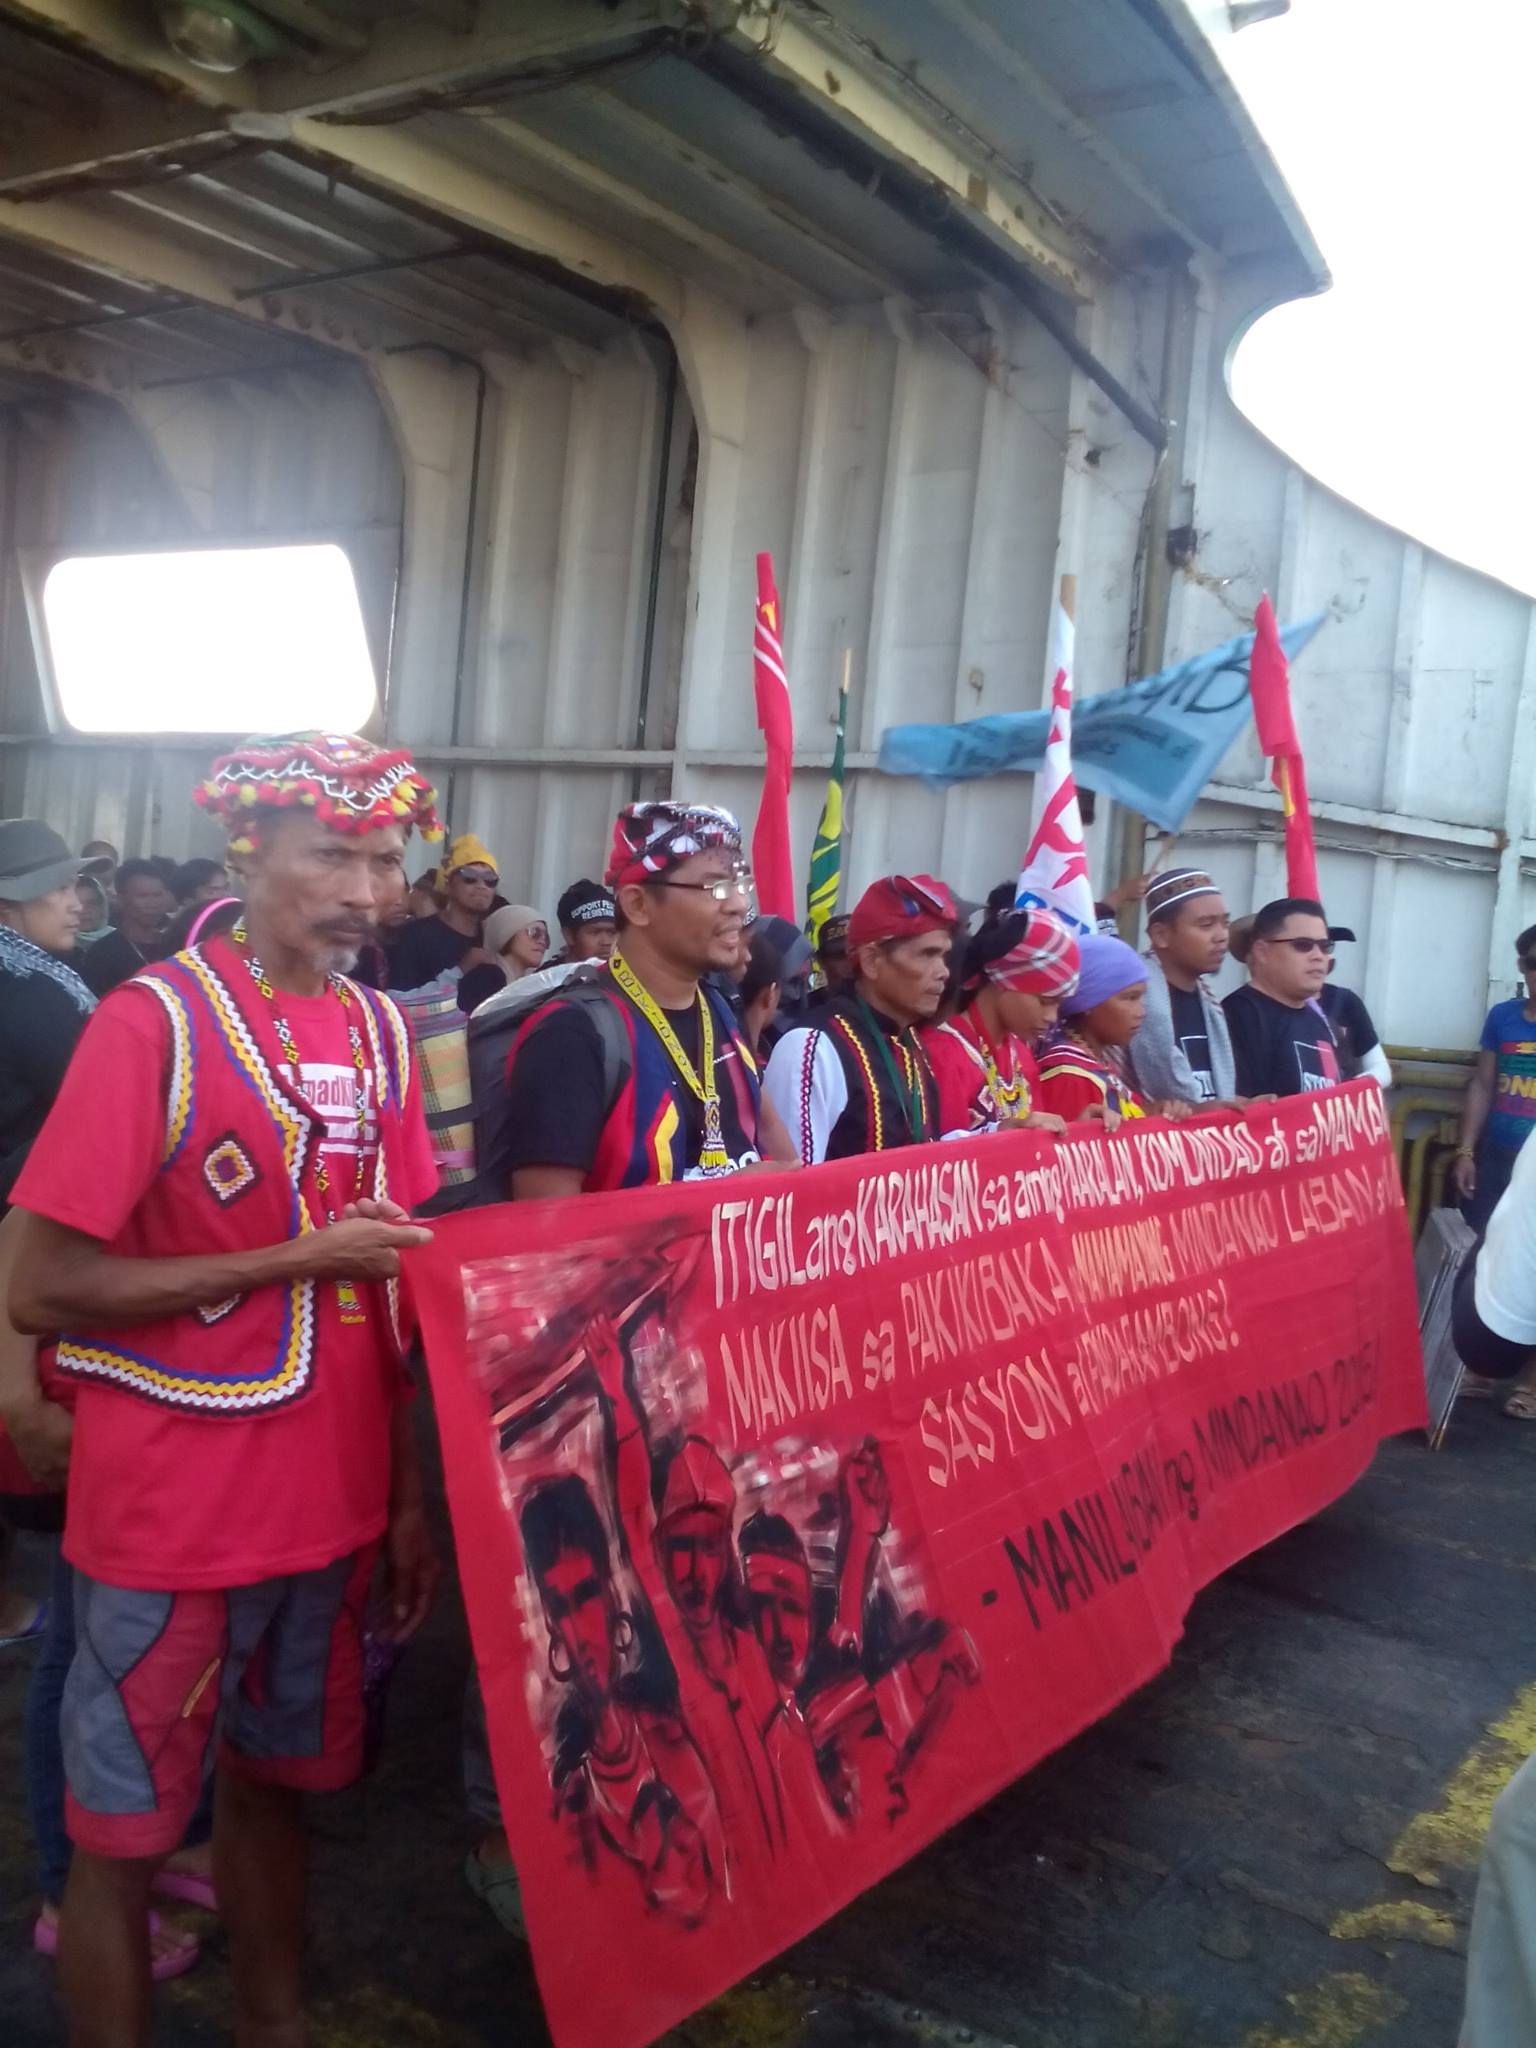 MANILAKBAYAN. About 700 Lumad from militarized indigenous communities in Mindanao arrive in Bicol en route to Manila. Photo courtesy of Bayan-Bicol